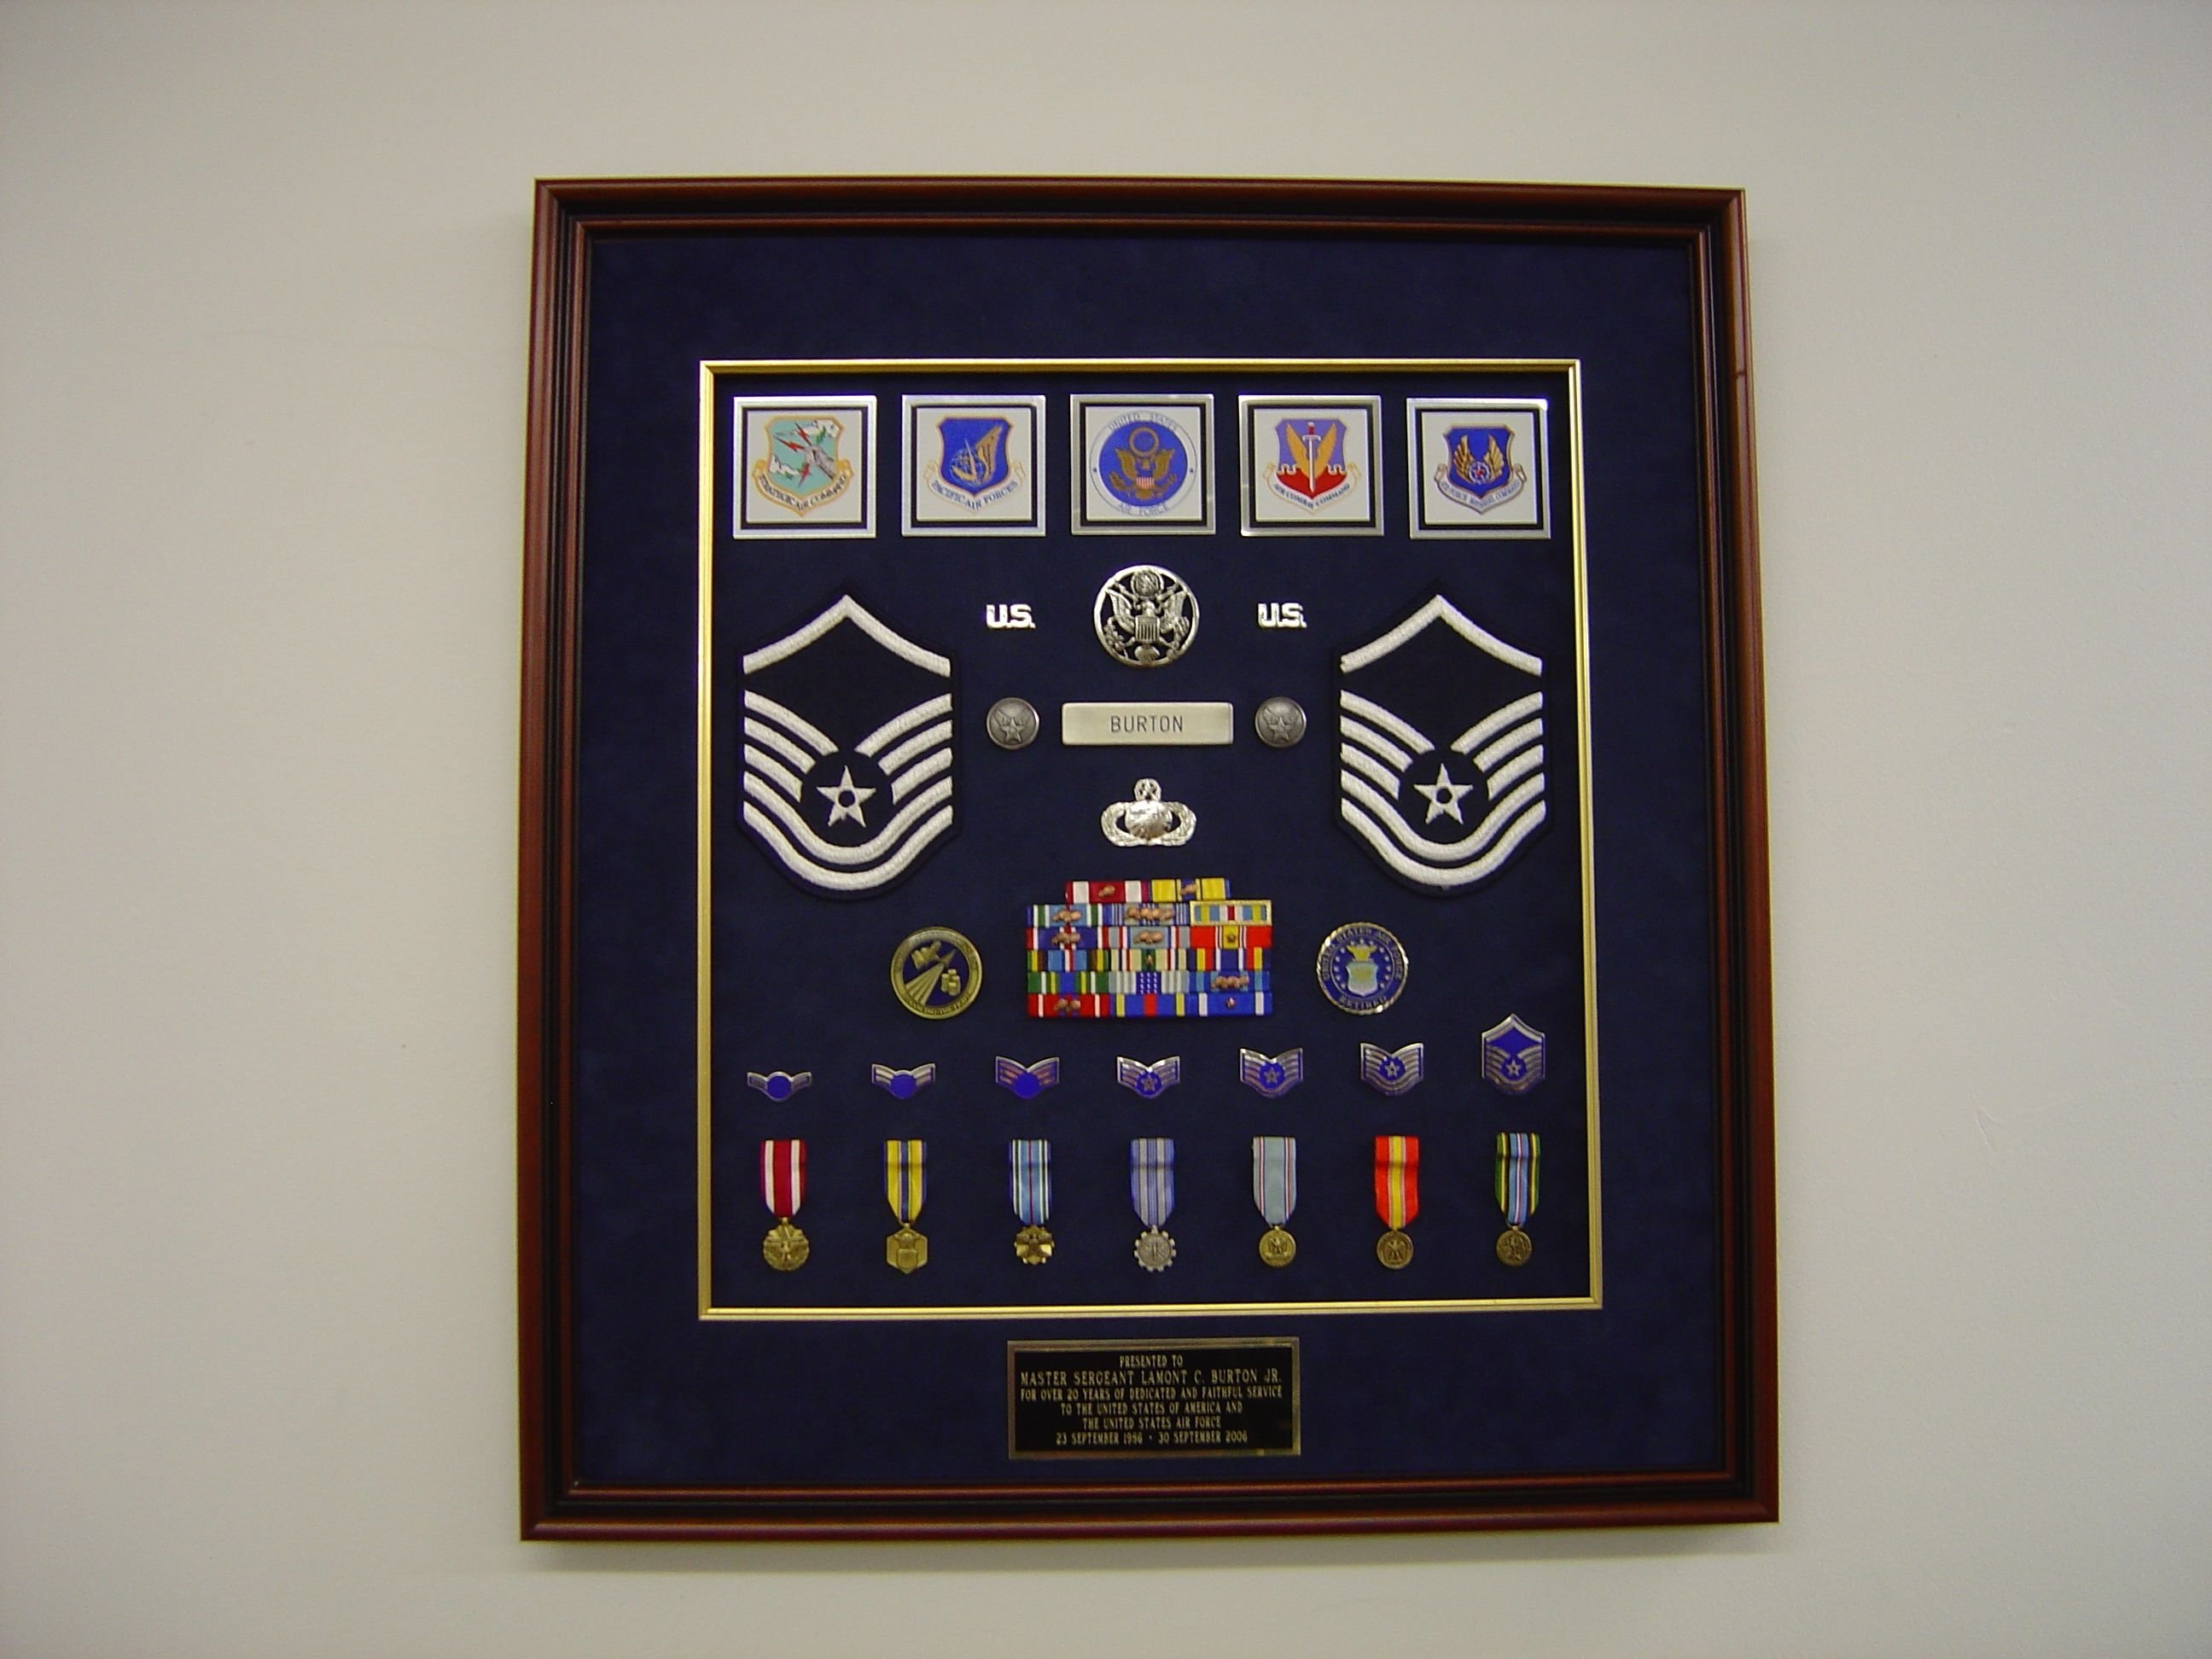 10 Trendy Air Force Shadow Box Ideas best shadow box ideas pictures decor and remodel shadow box 1 2021